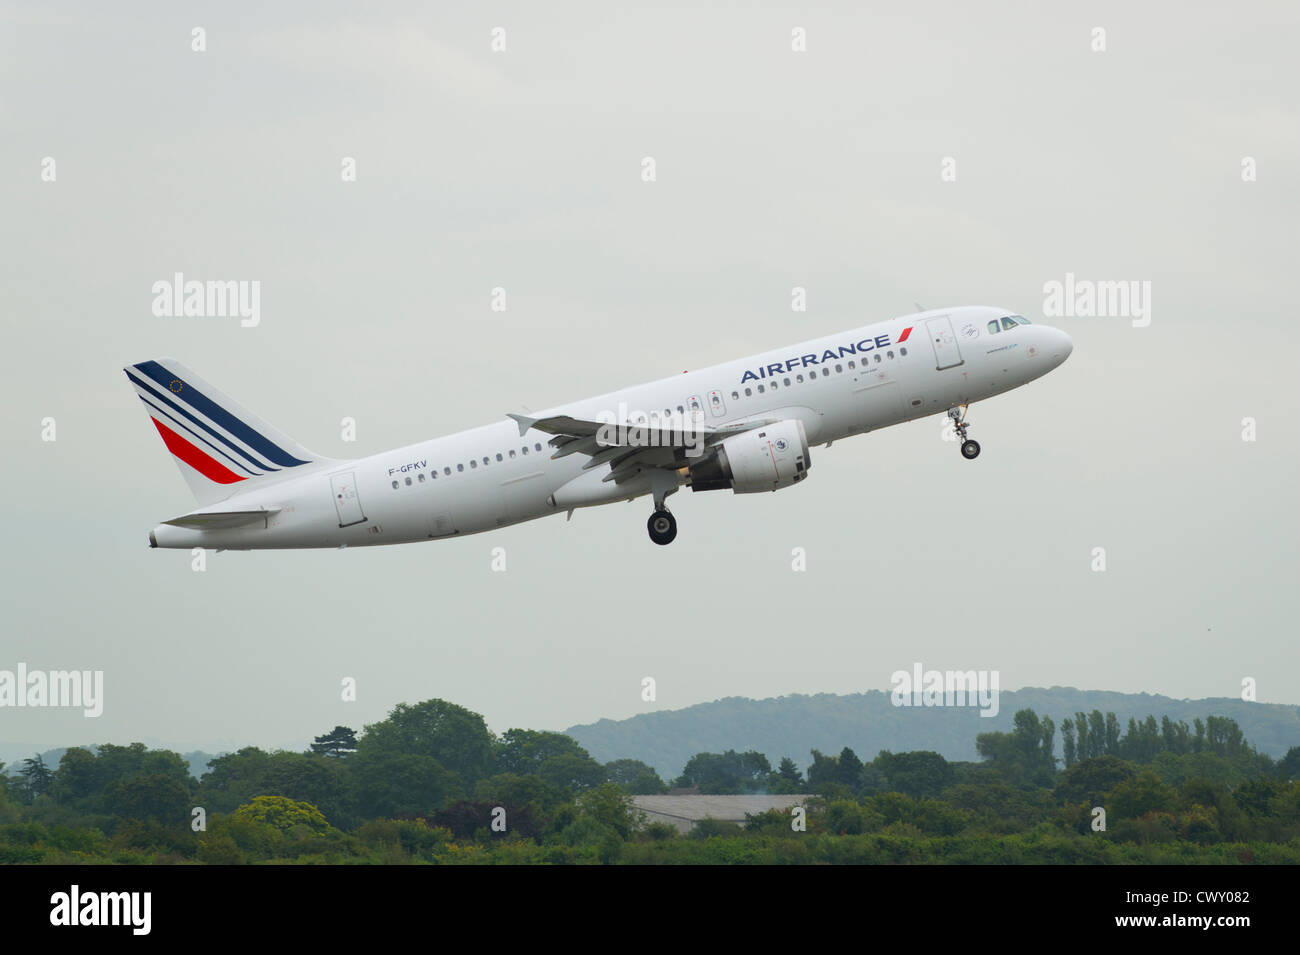 An Air France Airbus A320 taking off from Manchester International Airport (Editorial use only) - Stock Image